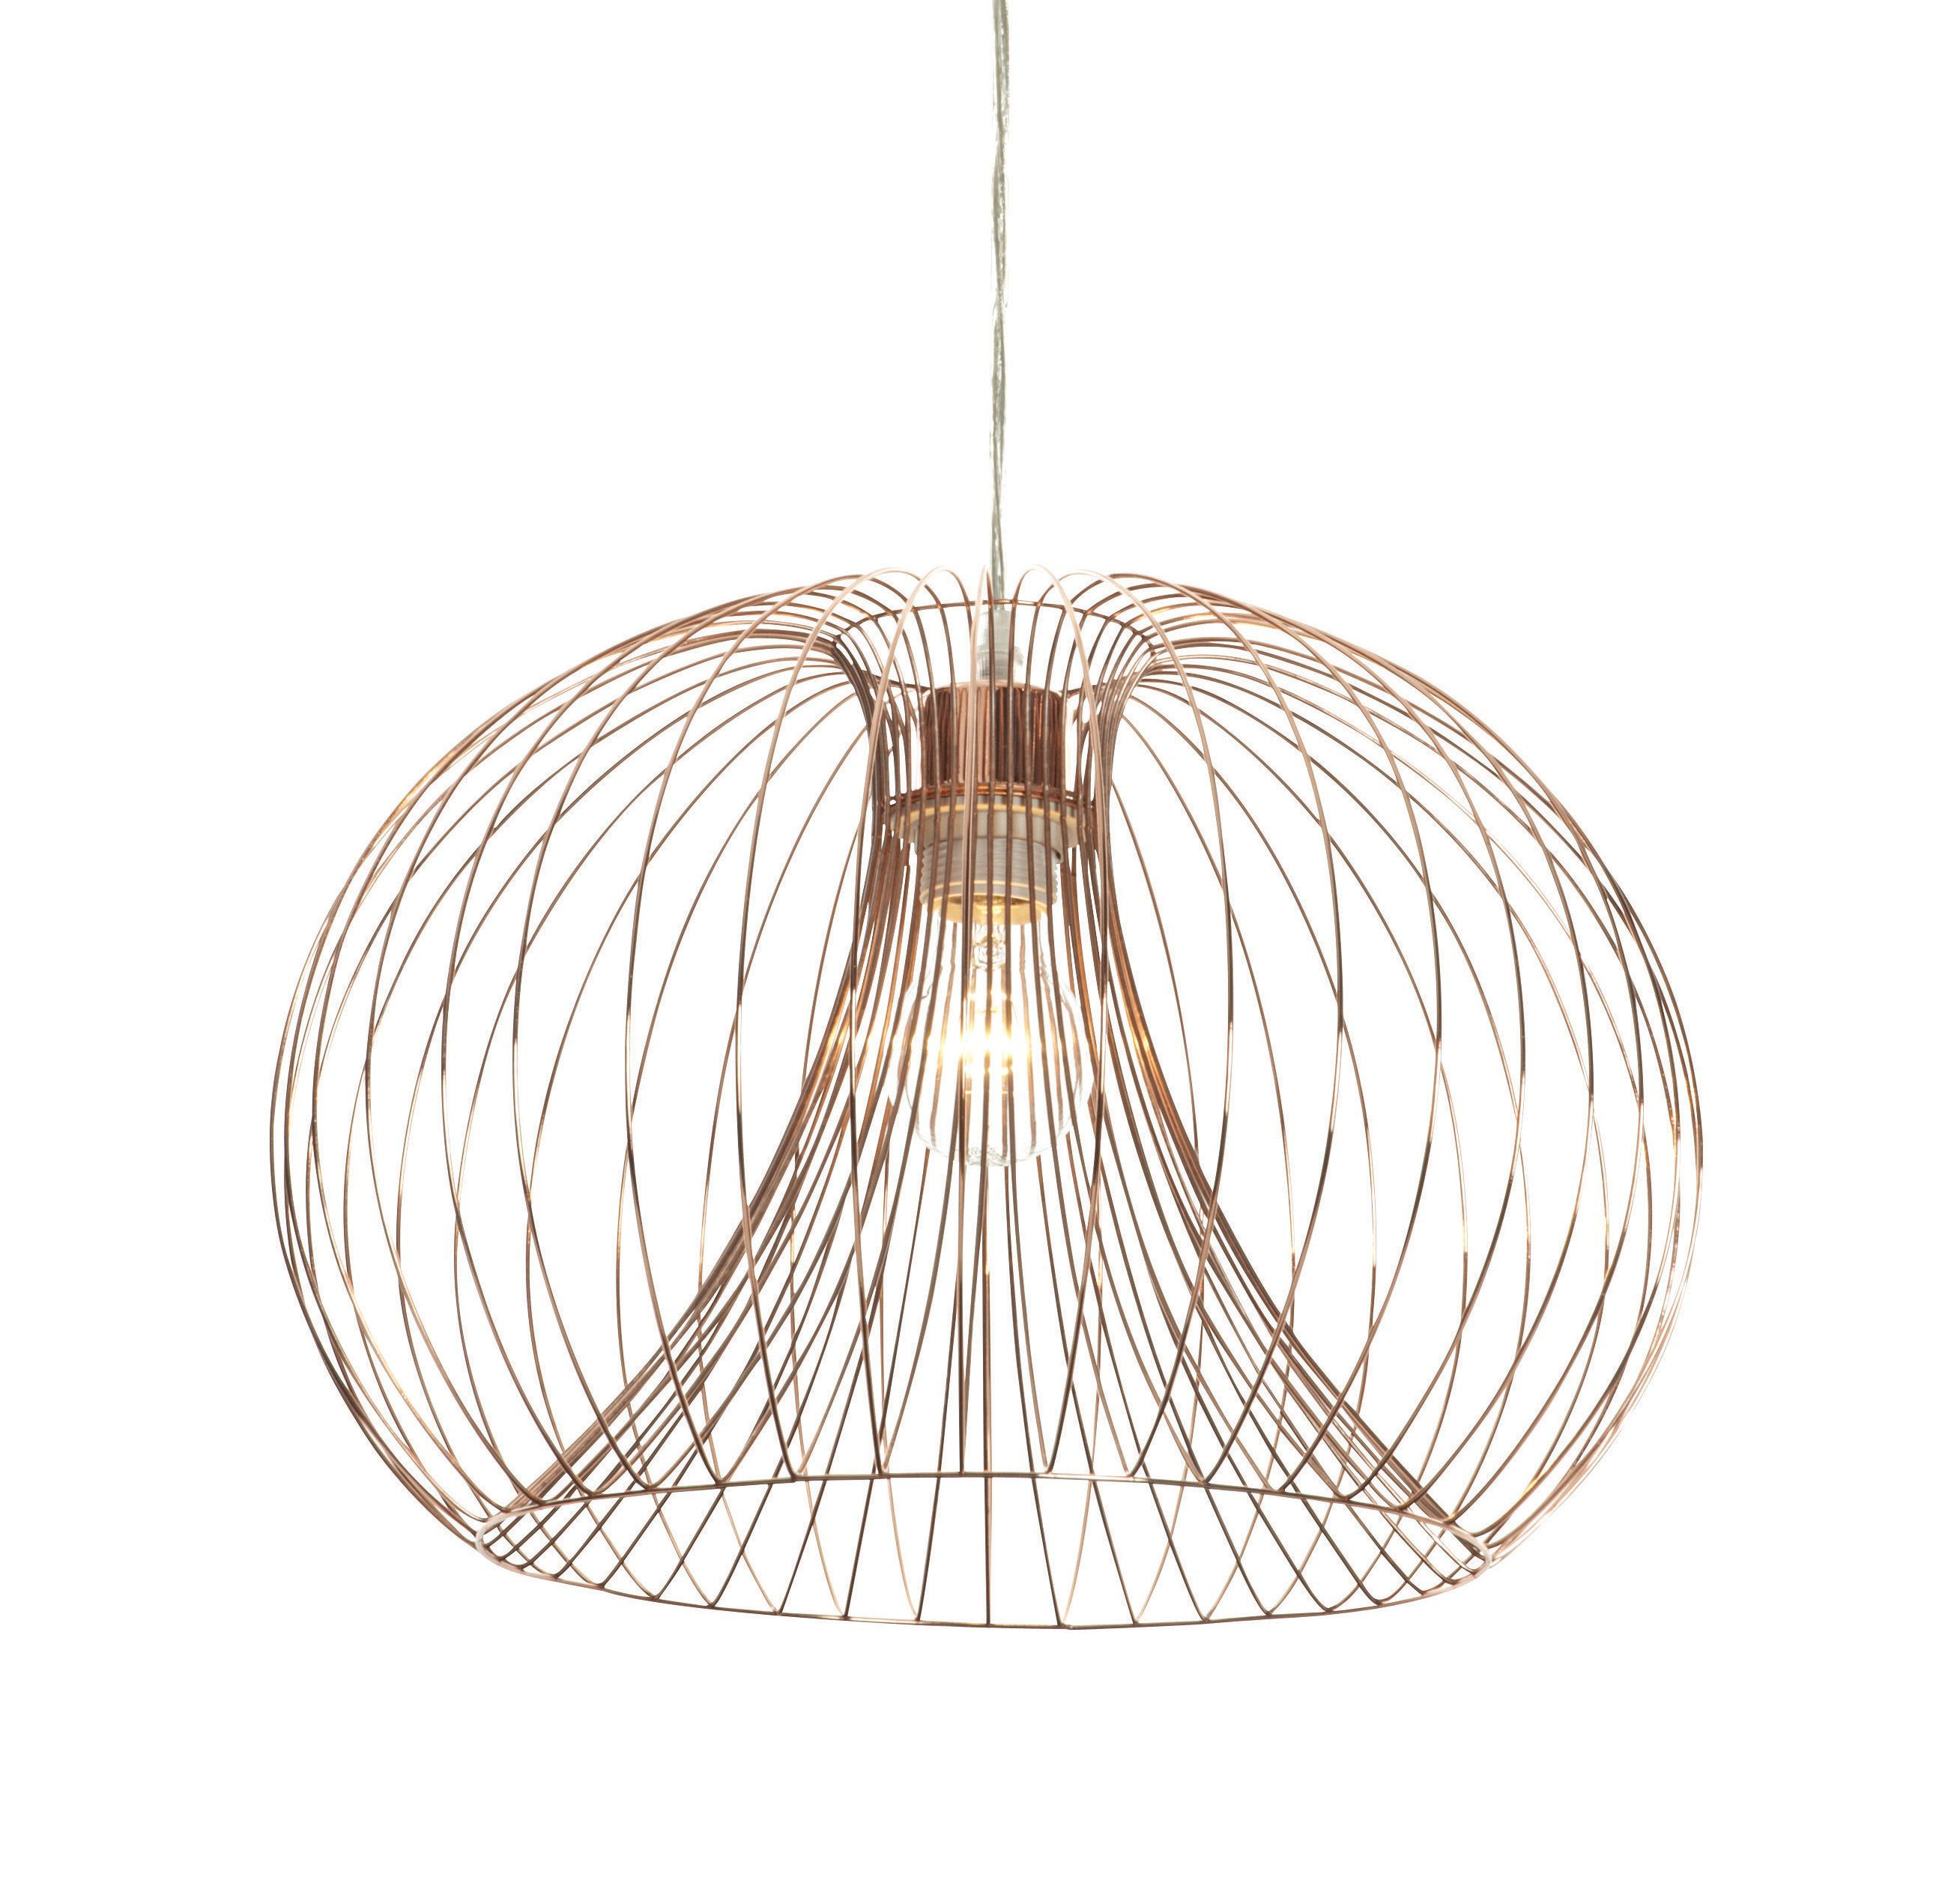 medium resolution of creative rustic lighting ideas in 2019 for the home bedroom jonas copper wire pendant ceiling light